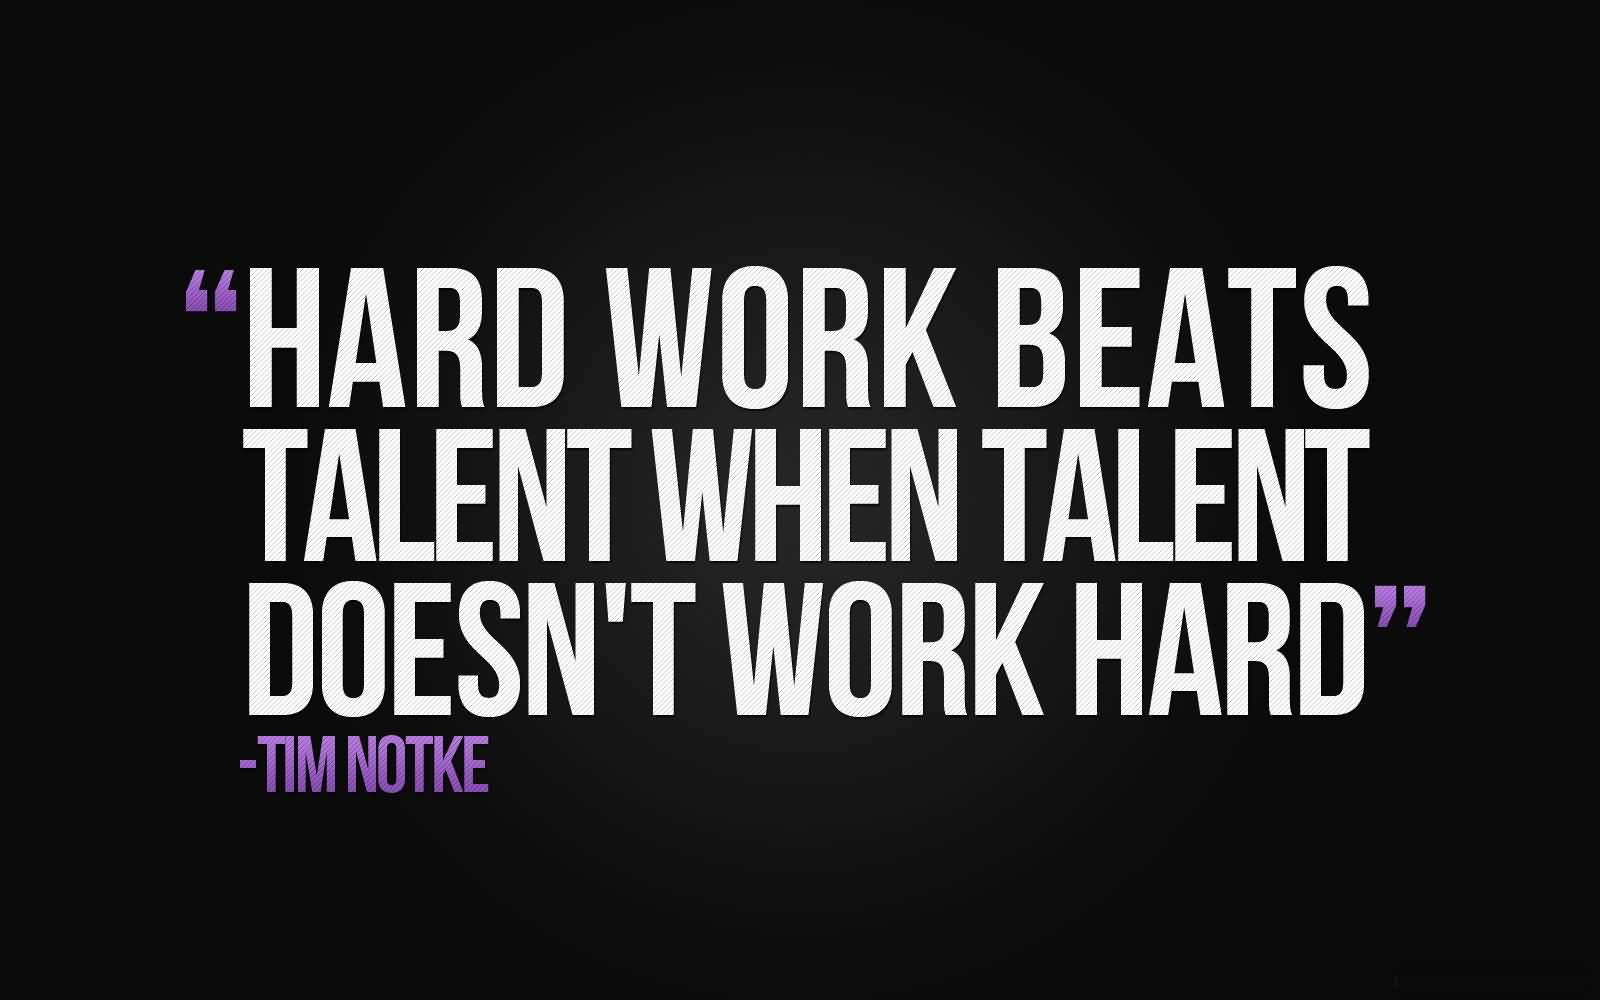 Motivational Sayings Motivational Quotes About Hard Work Pictures And Motivational